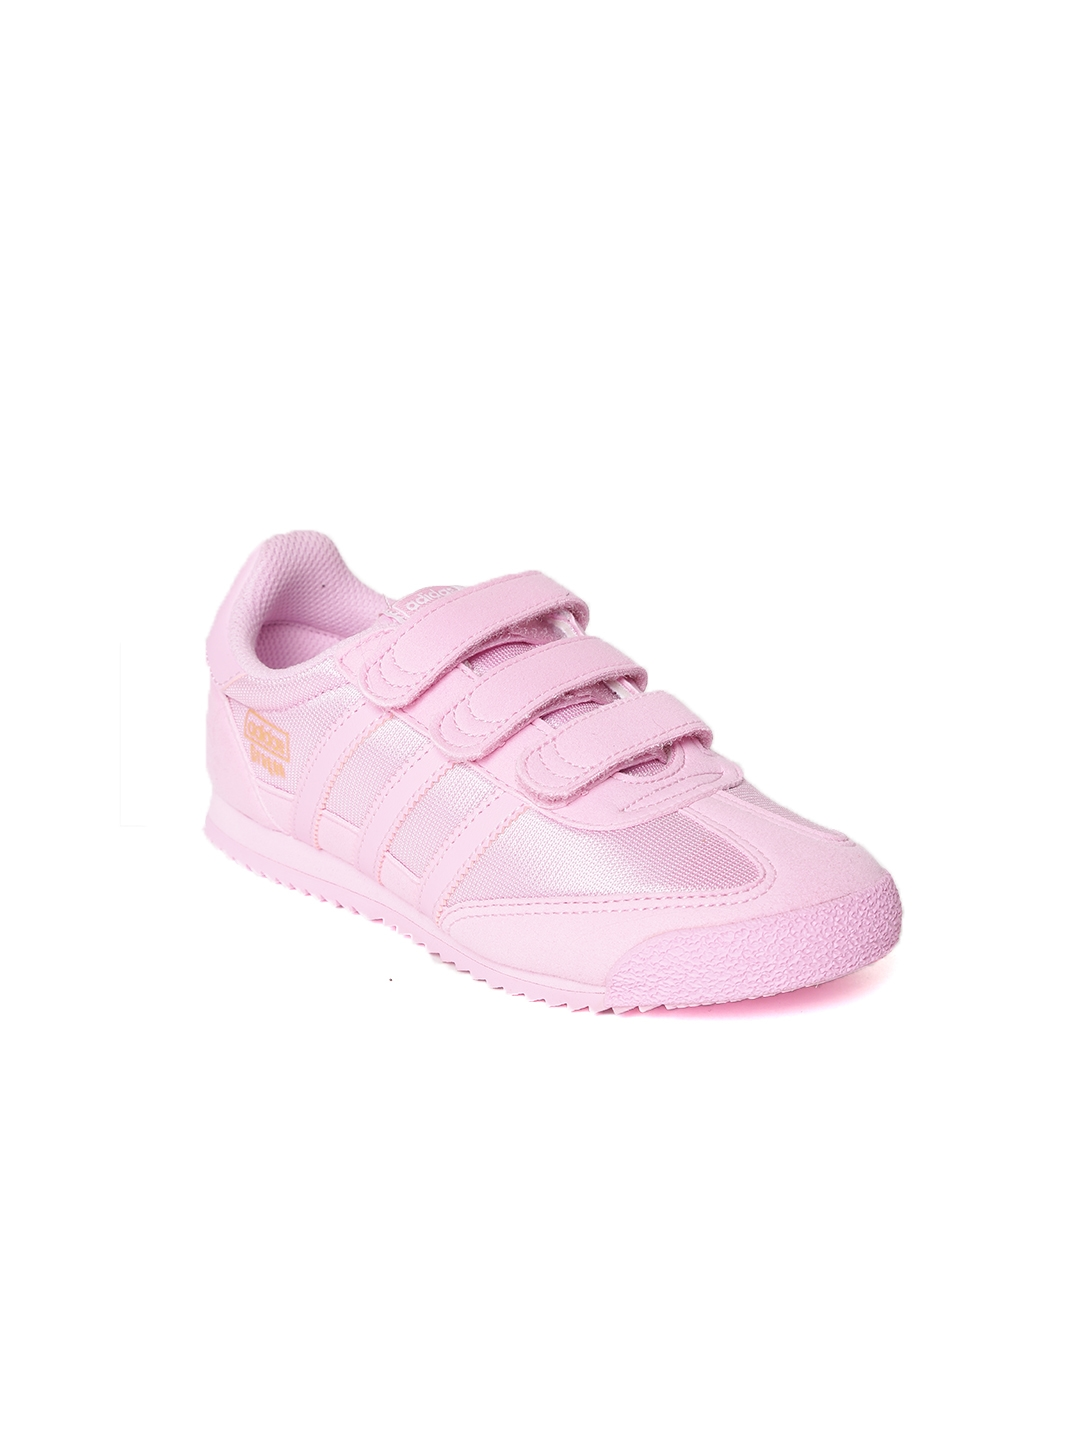 Buy ADIDAS Originals Kids Pink Dragon OG CloudFoam C